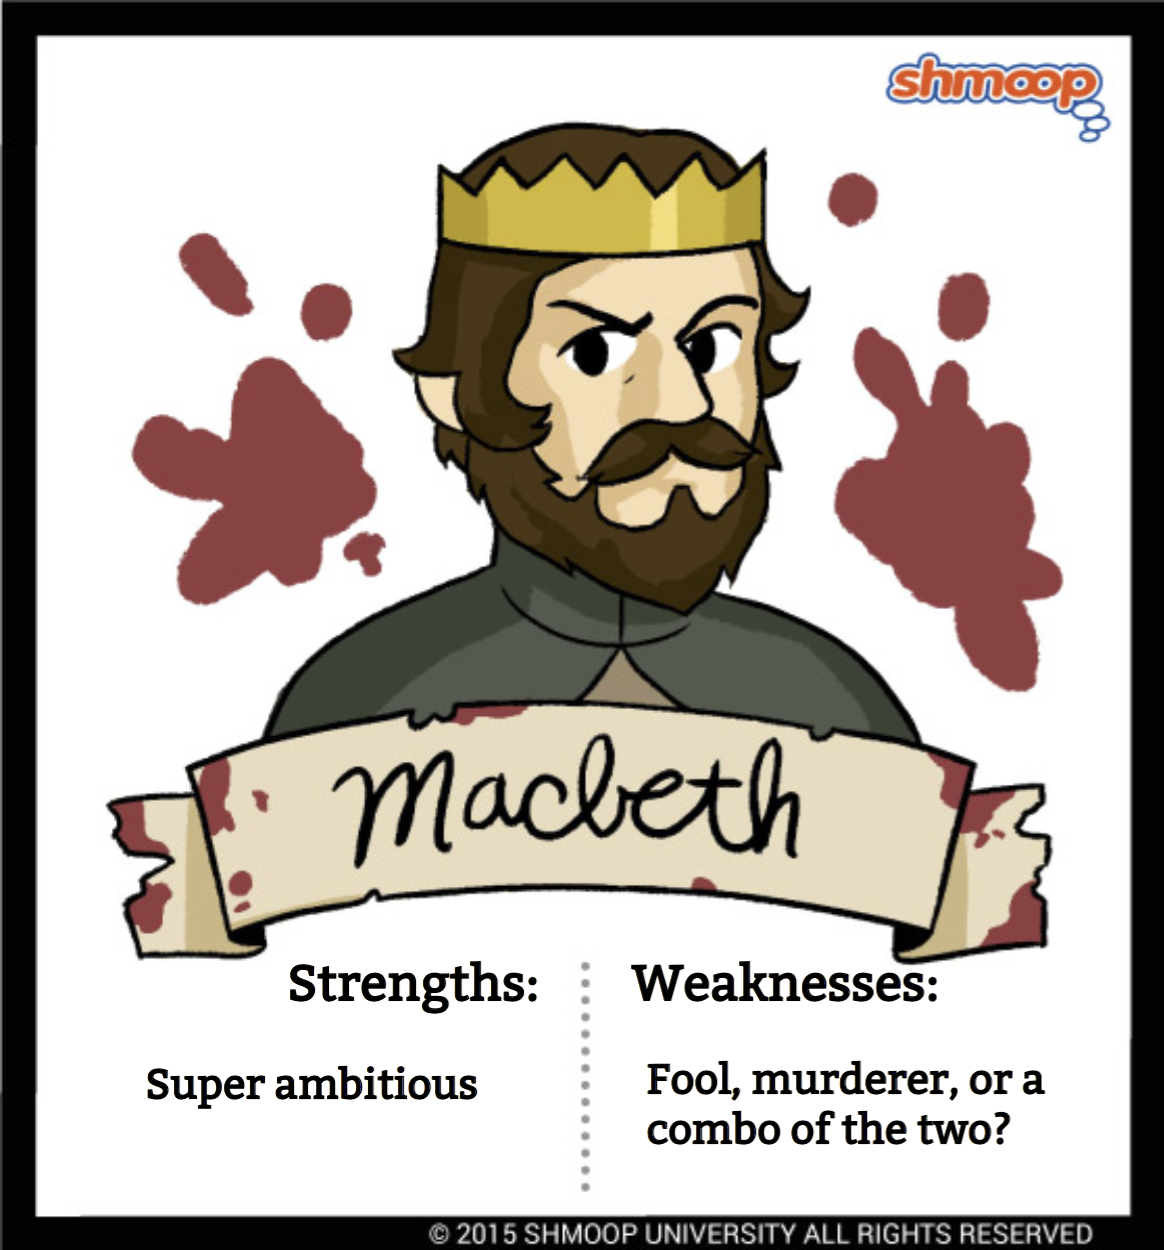 change of characters of macbeth and Changes concern the expanded roles of the macduffs  8 davenant's macbeth  from the yale manuscript, ed  such characters that direct contrasts to them.